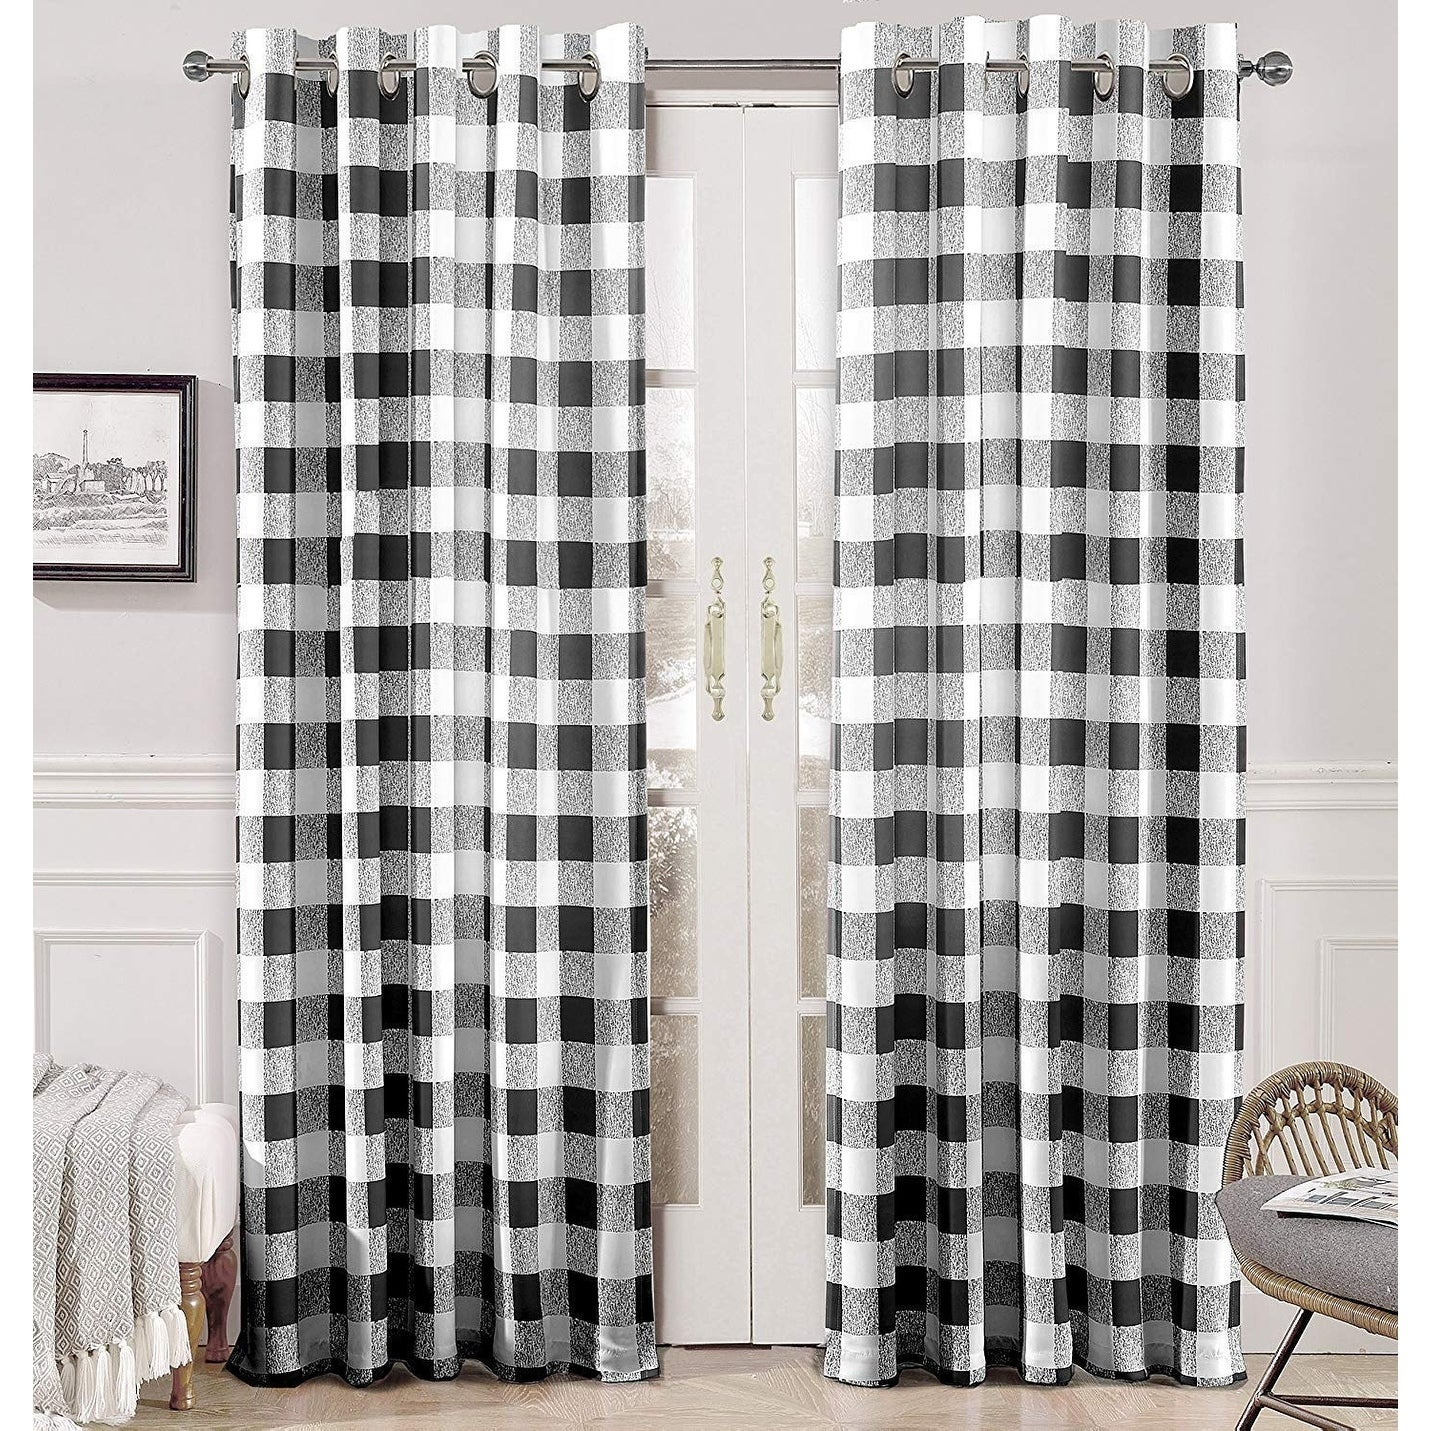 Details About Porch & Den Alfalfa Plaid Pattern Room-Darkening Window within Porch & Den Park Point Blush 24-Inch Tier Pairs (Image 1 of 20)